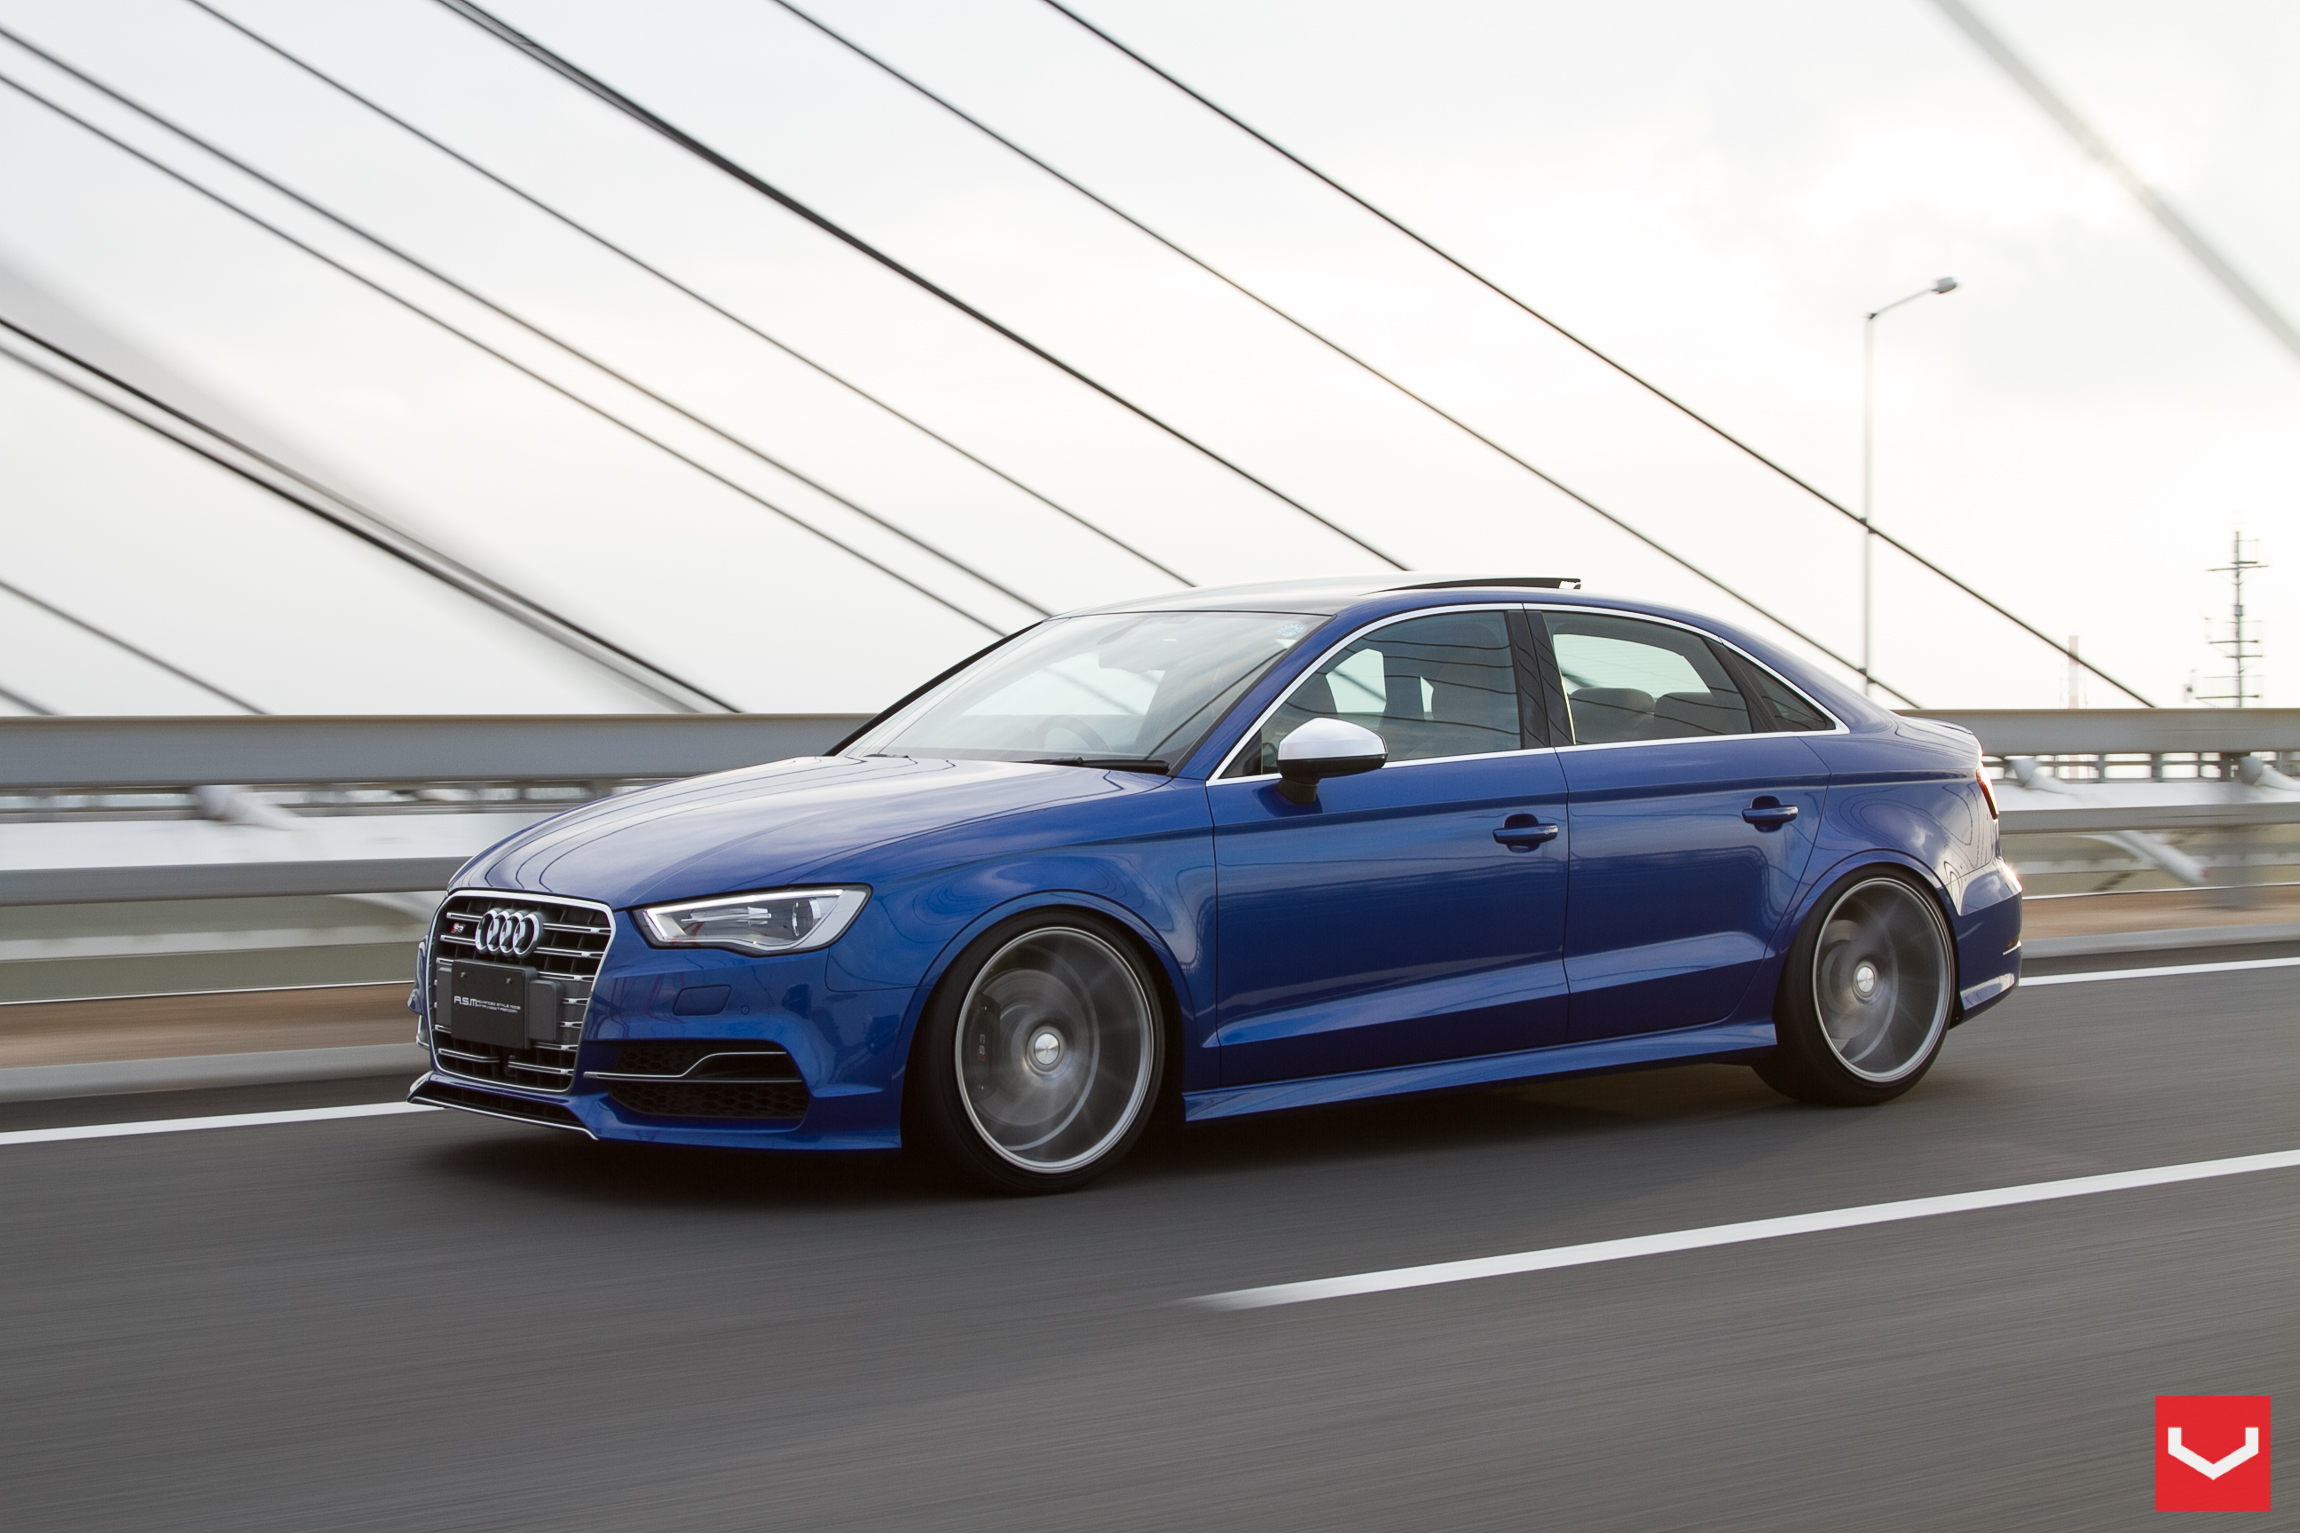 2015 Audi S3 Sedan Stanced On Vossen Wheels Autoevolution